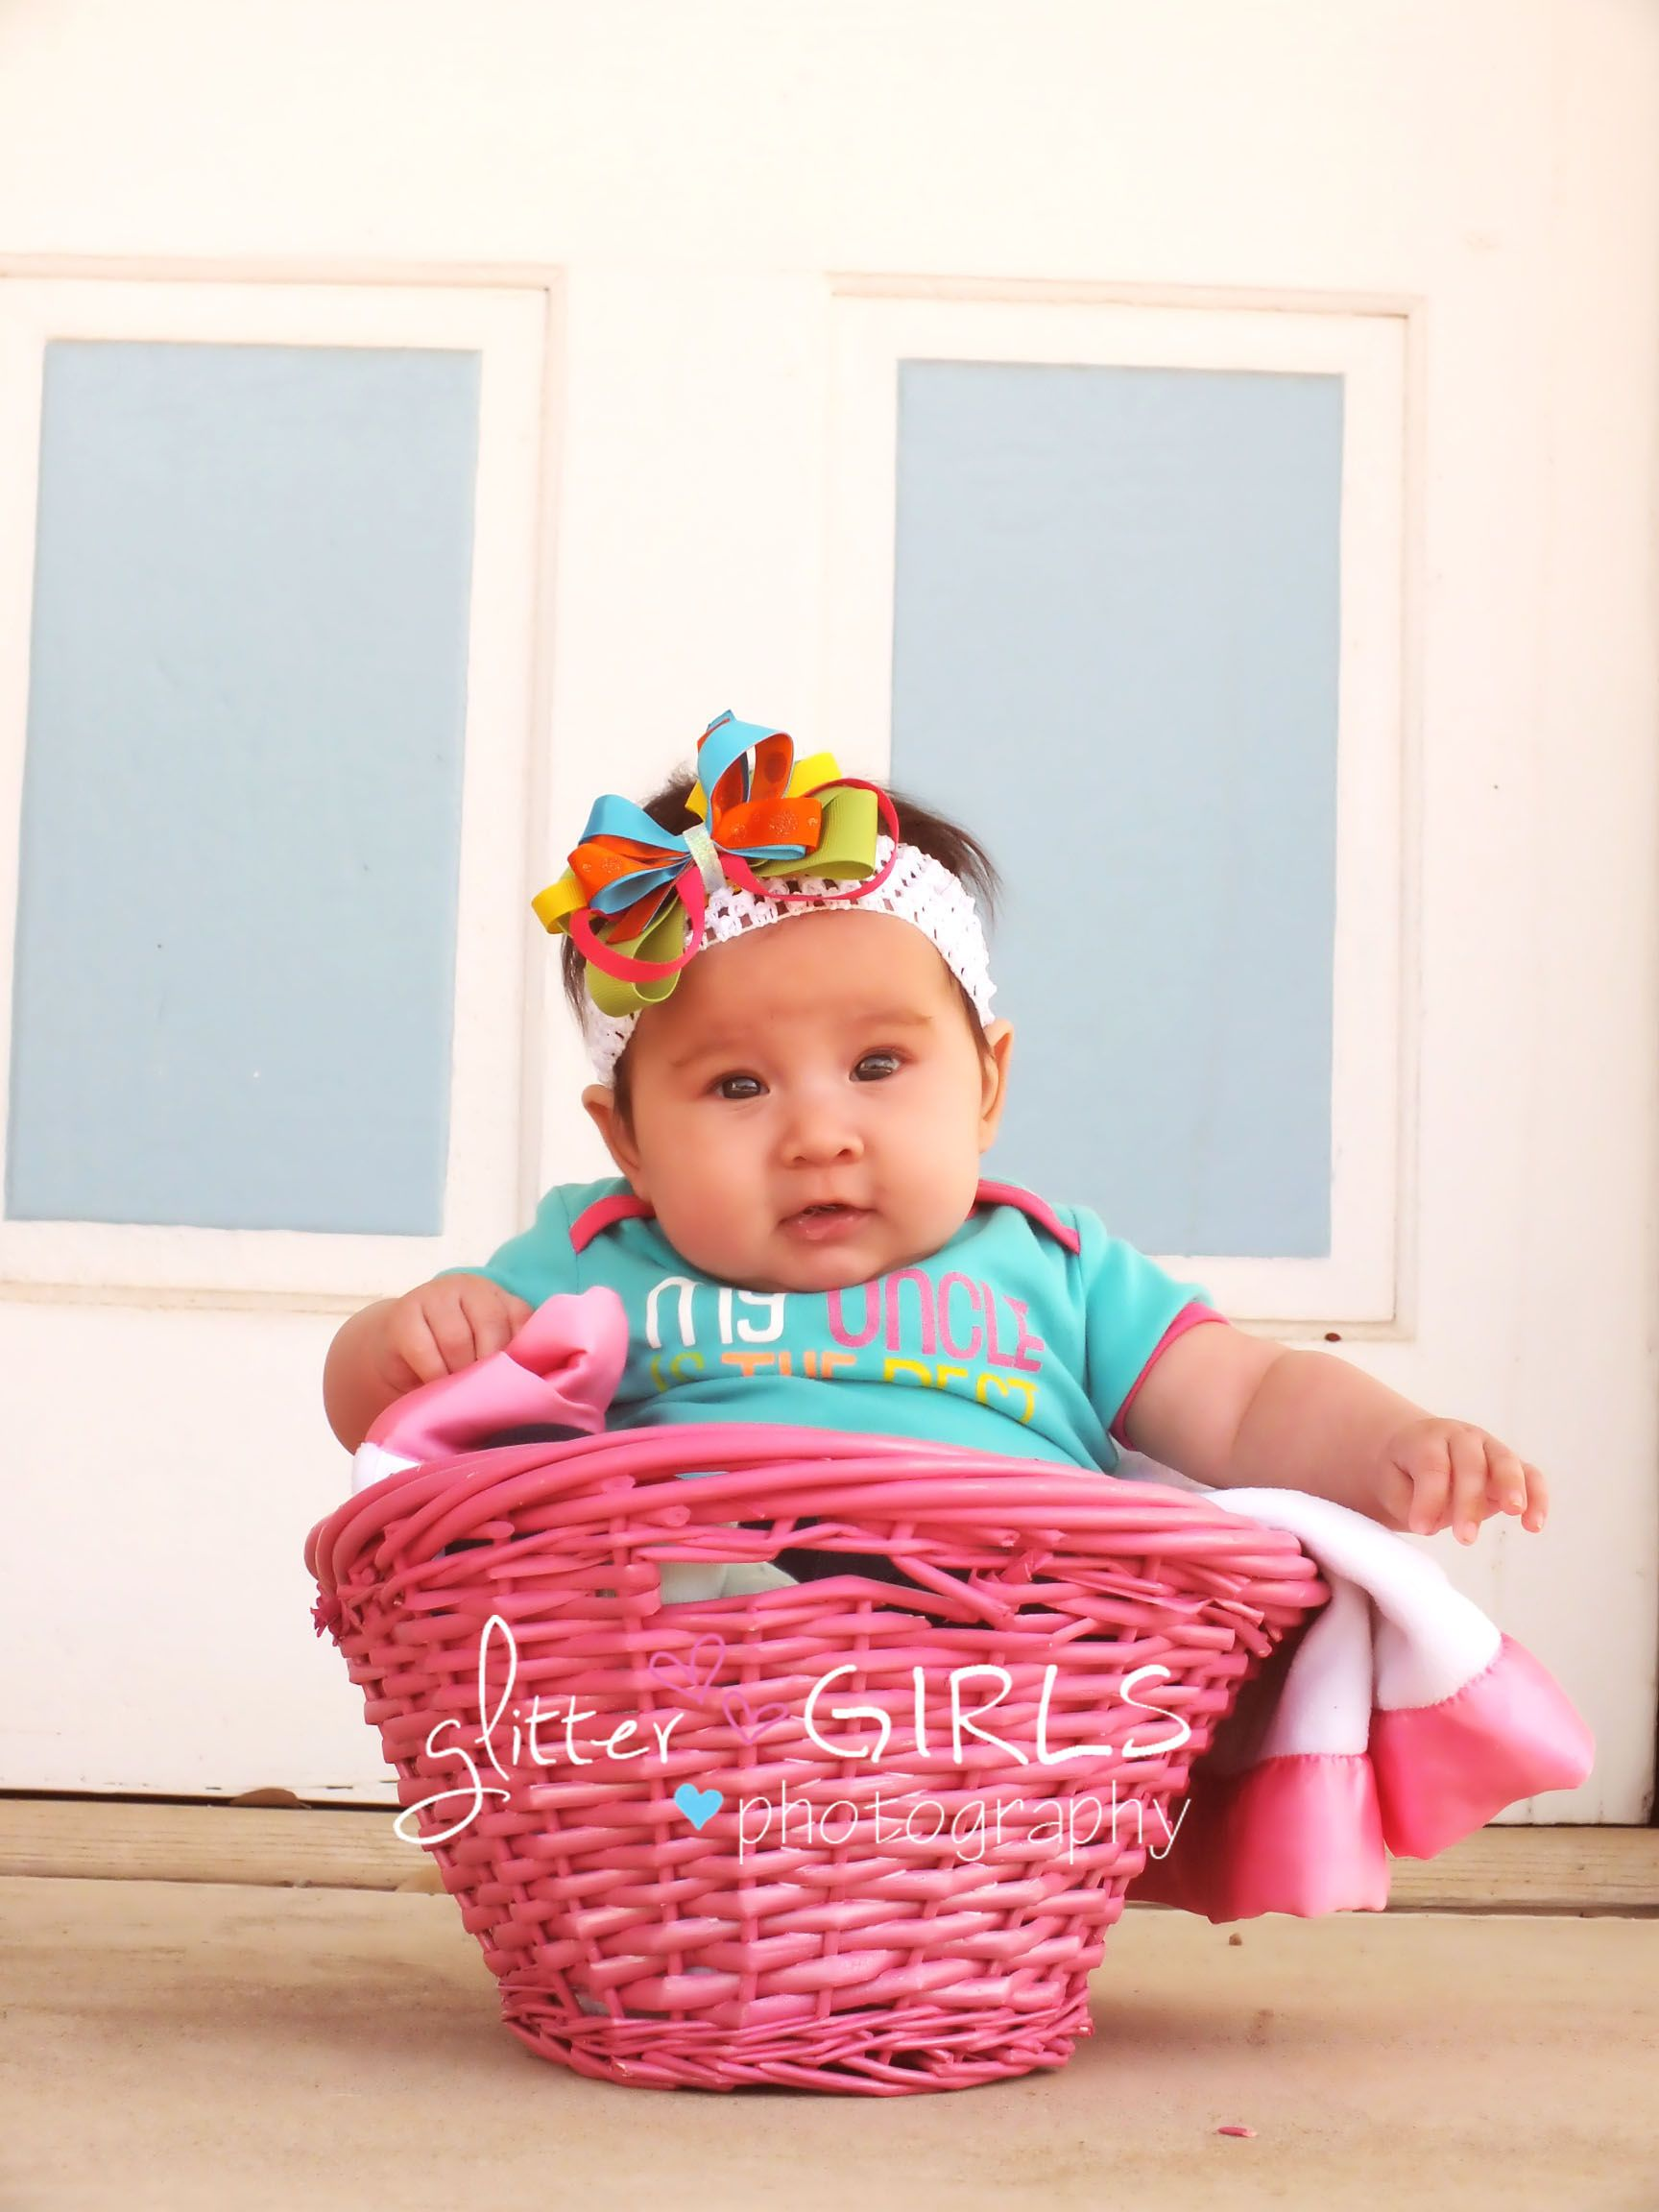 Baby photography creative baby photography cute baby photography 3 month old